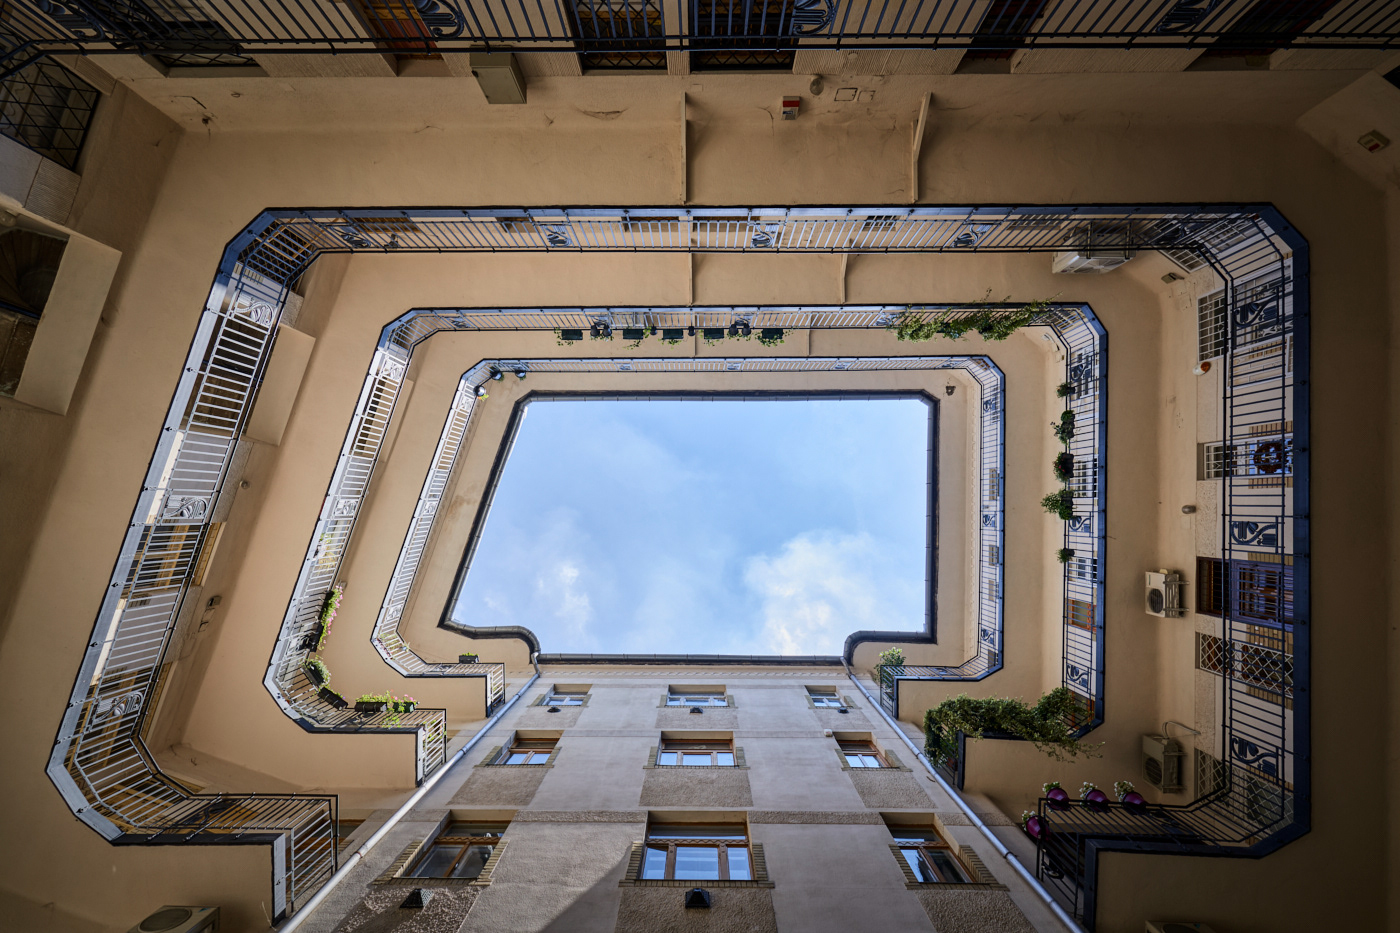 architecture building courtyard heritage innercourtyard lookup old